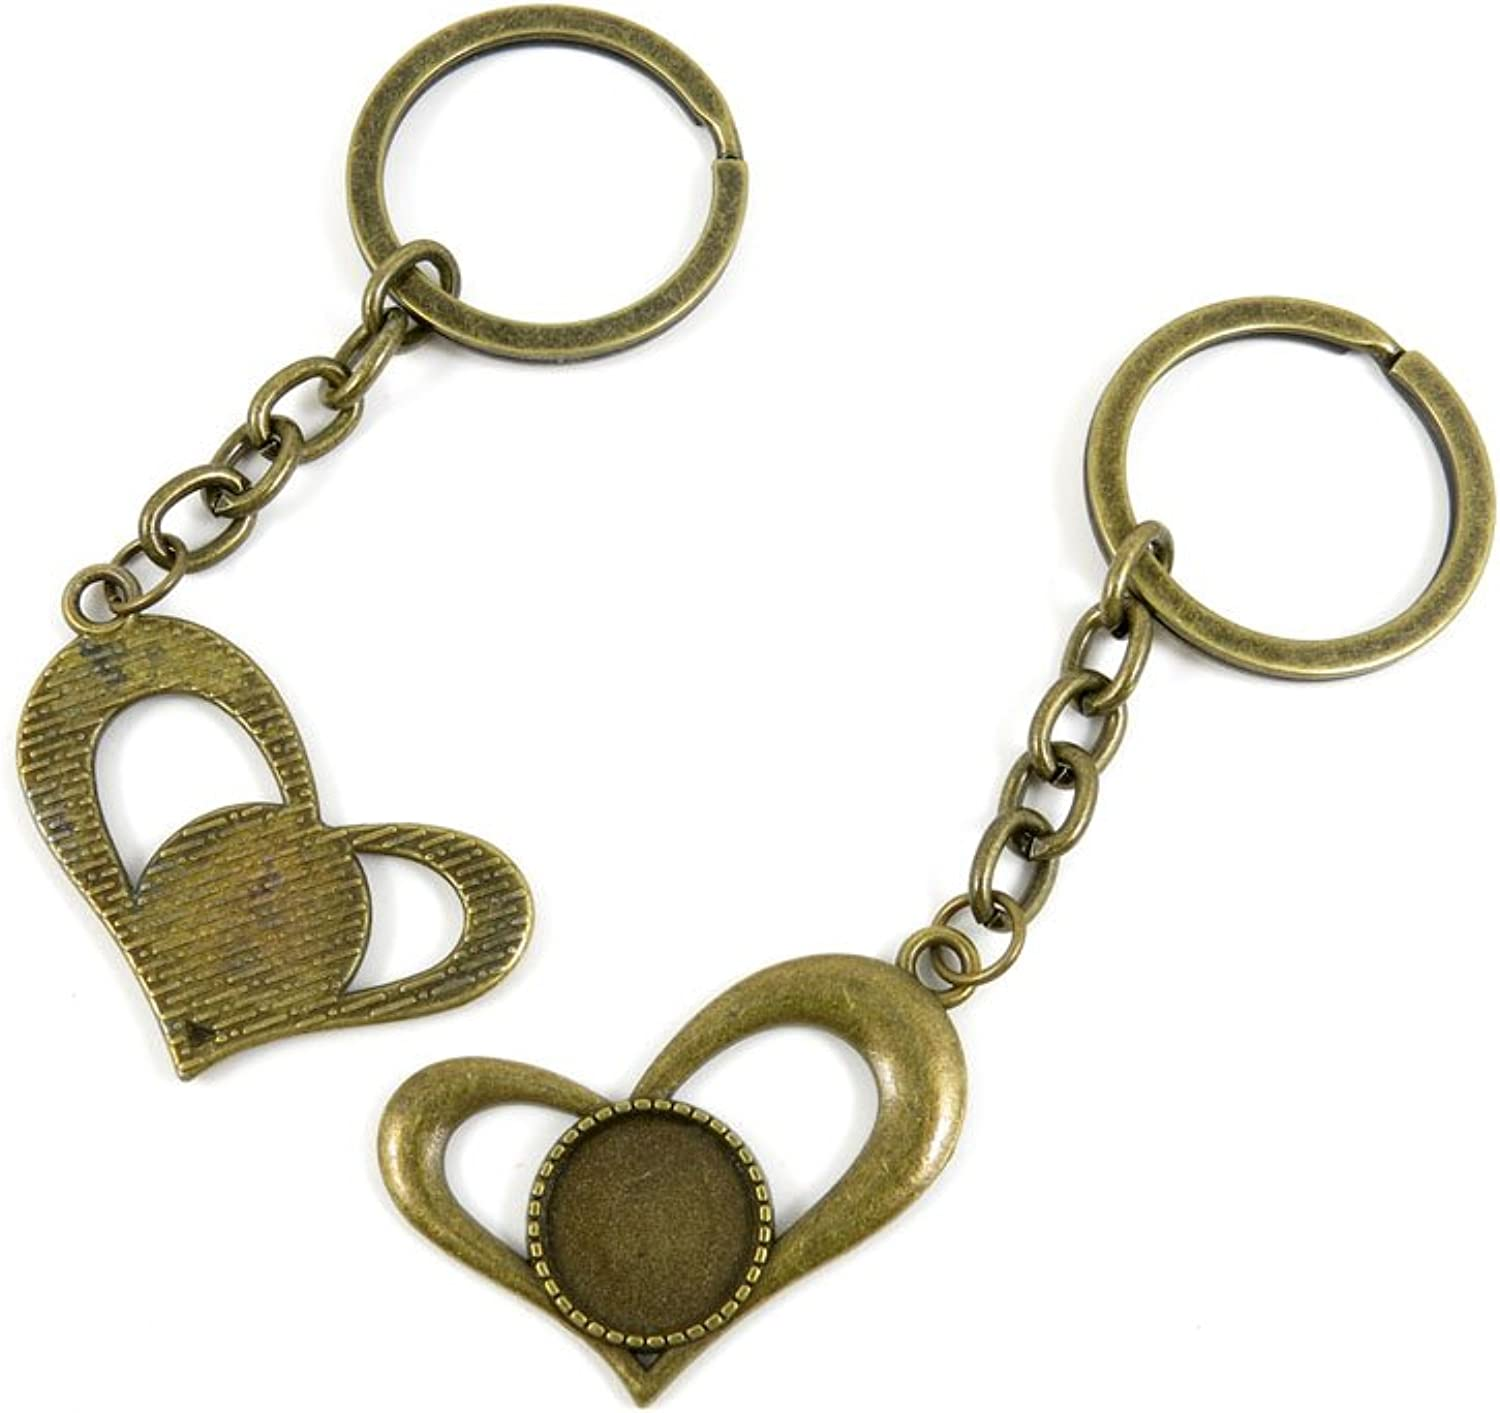 100 PCS Keyrings Keychains Key Ring Chains Tags Jewelry Findings Clasps Buckles Supplies S0DD1 Heart Cabochon Base Blanks